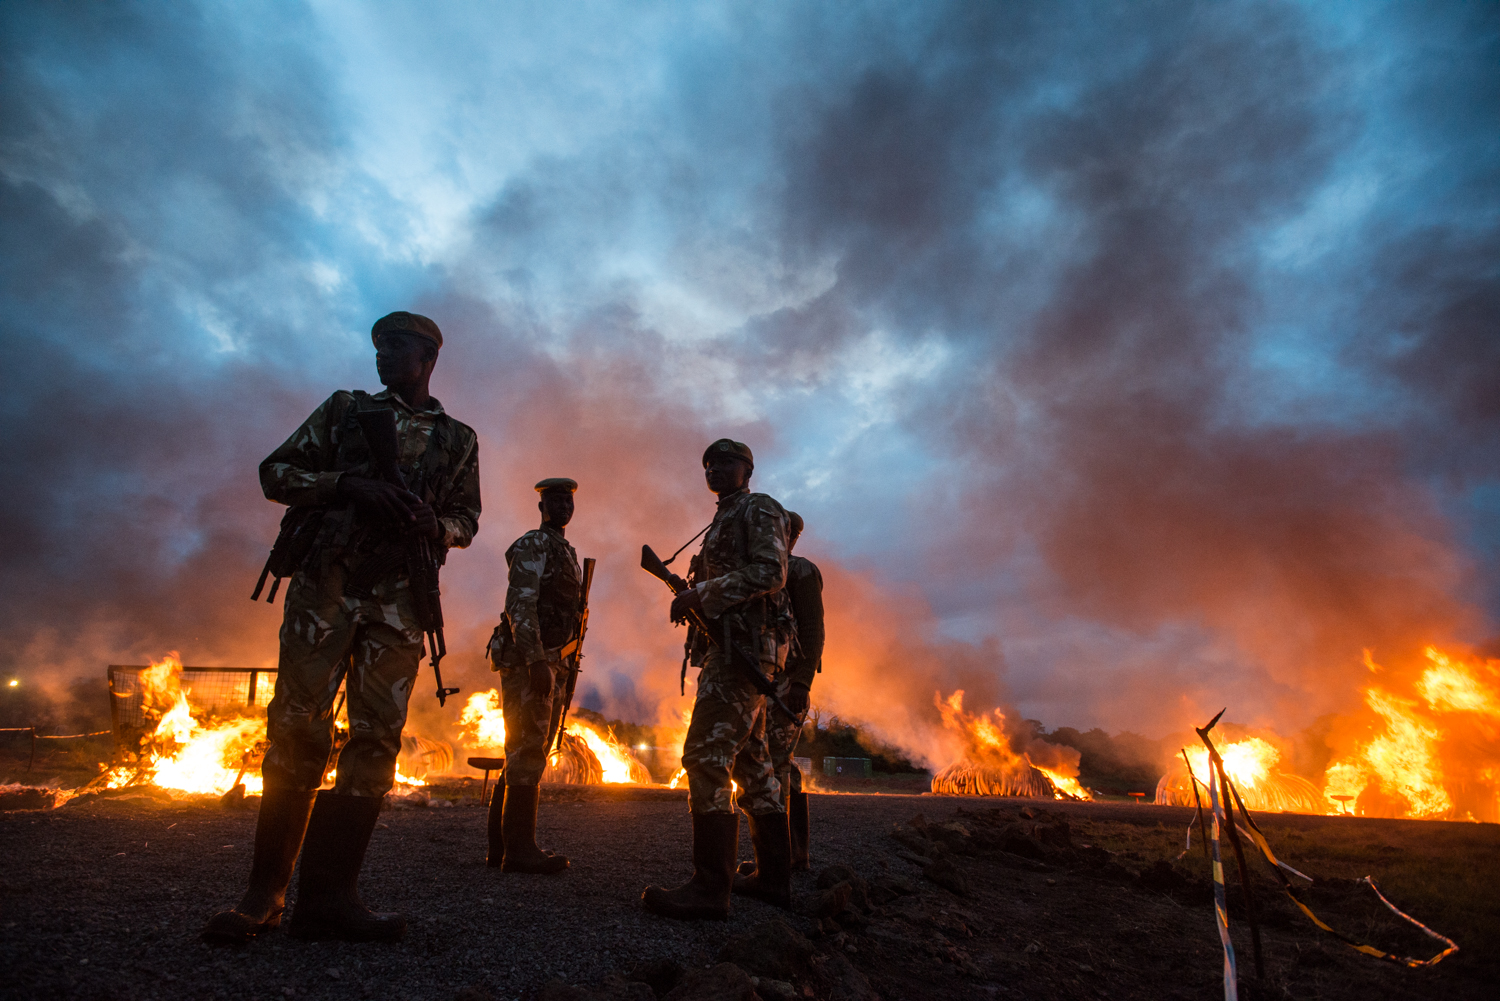 The pyres continue to burn as evening approaches. Photo by Mia Collis for the Kenya Wildlife Service